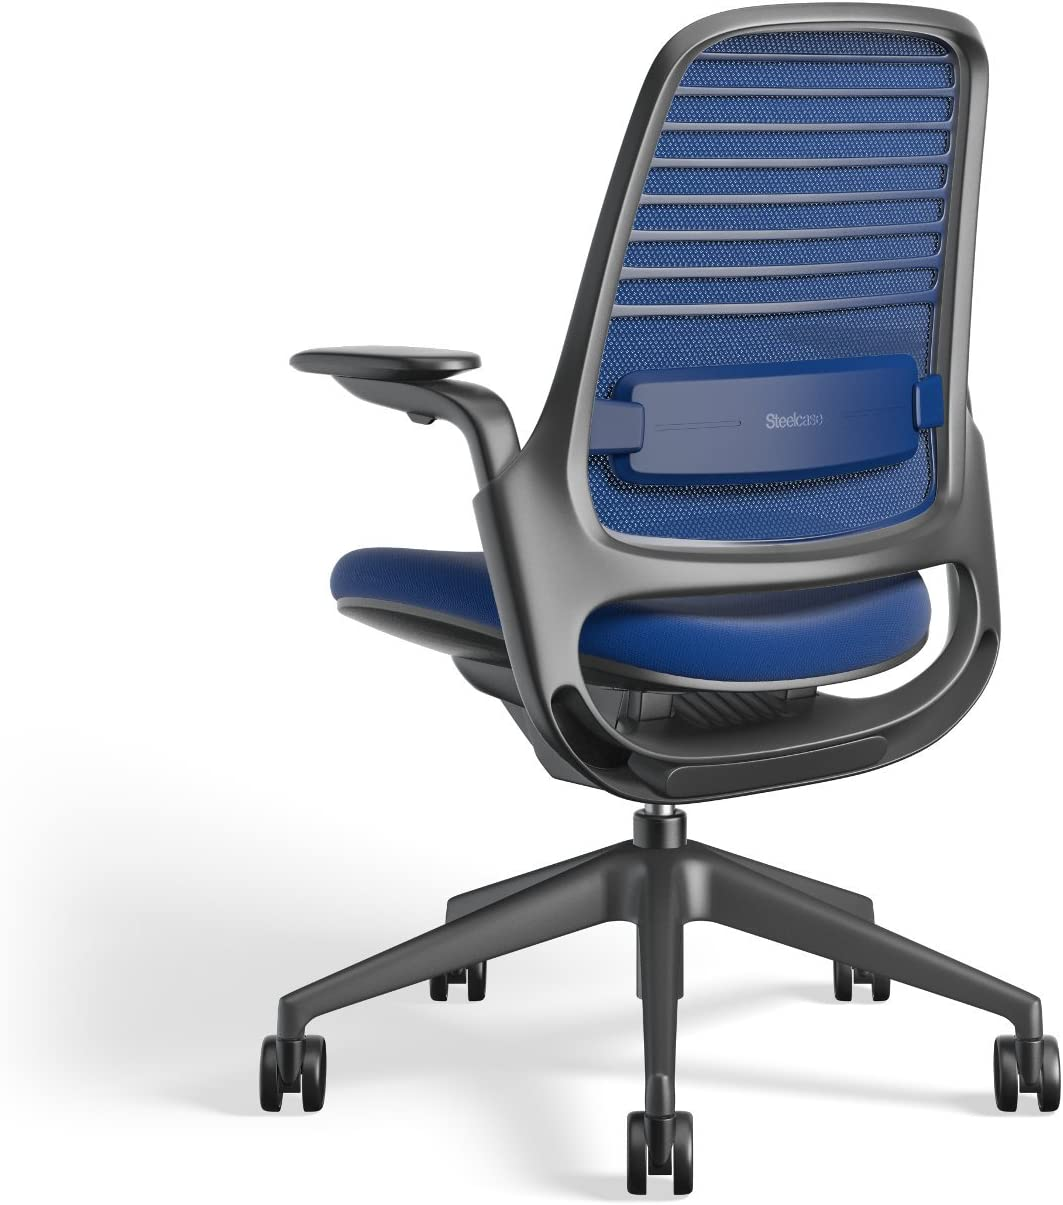 Steelcase 435A00 Series 1 Work Chair Office Blue Jay